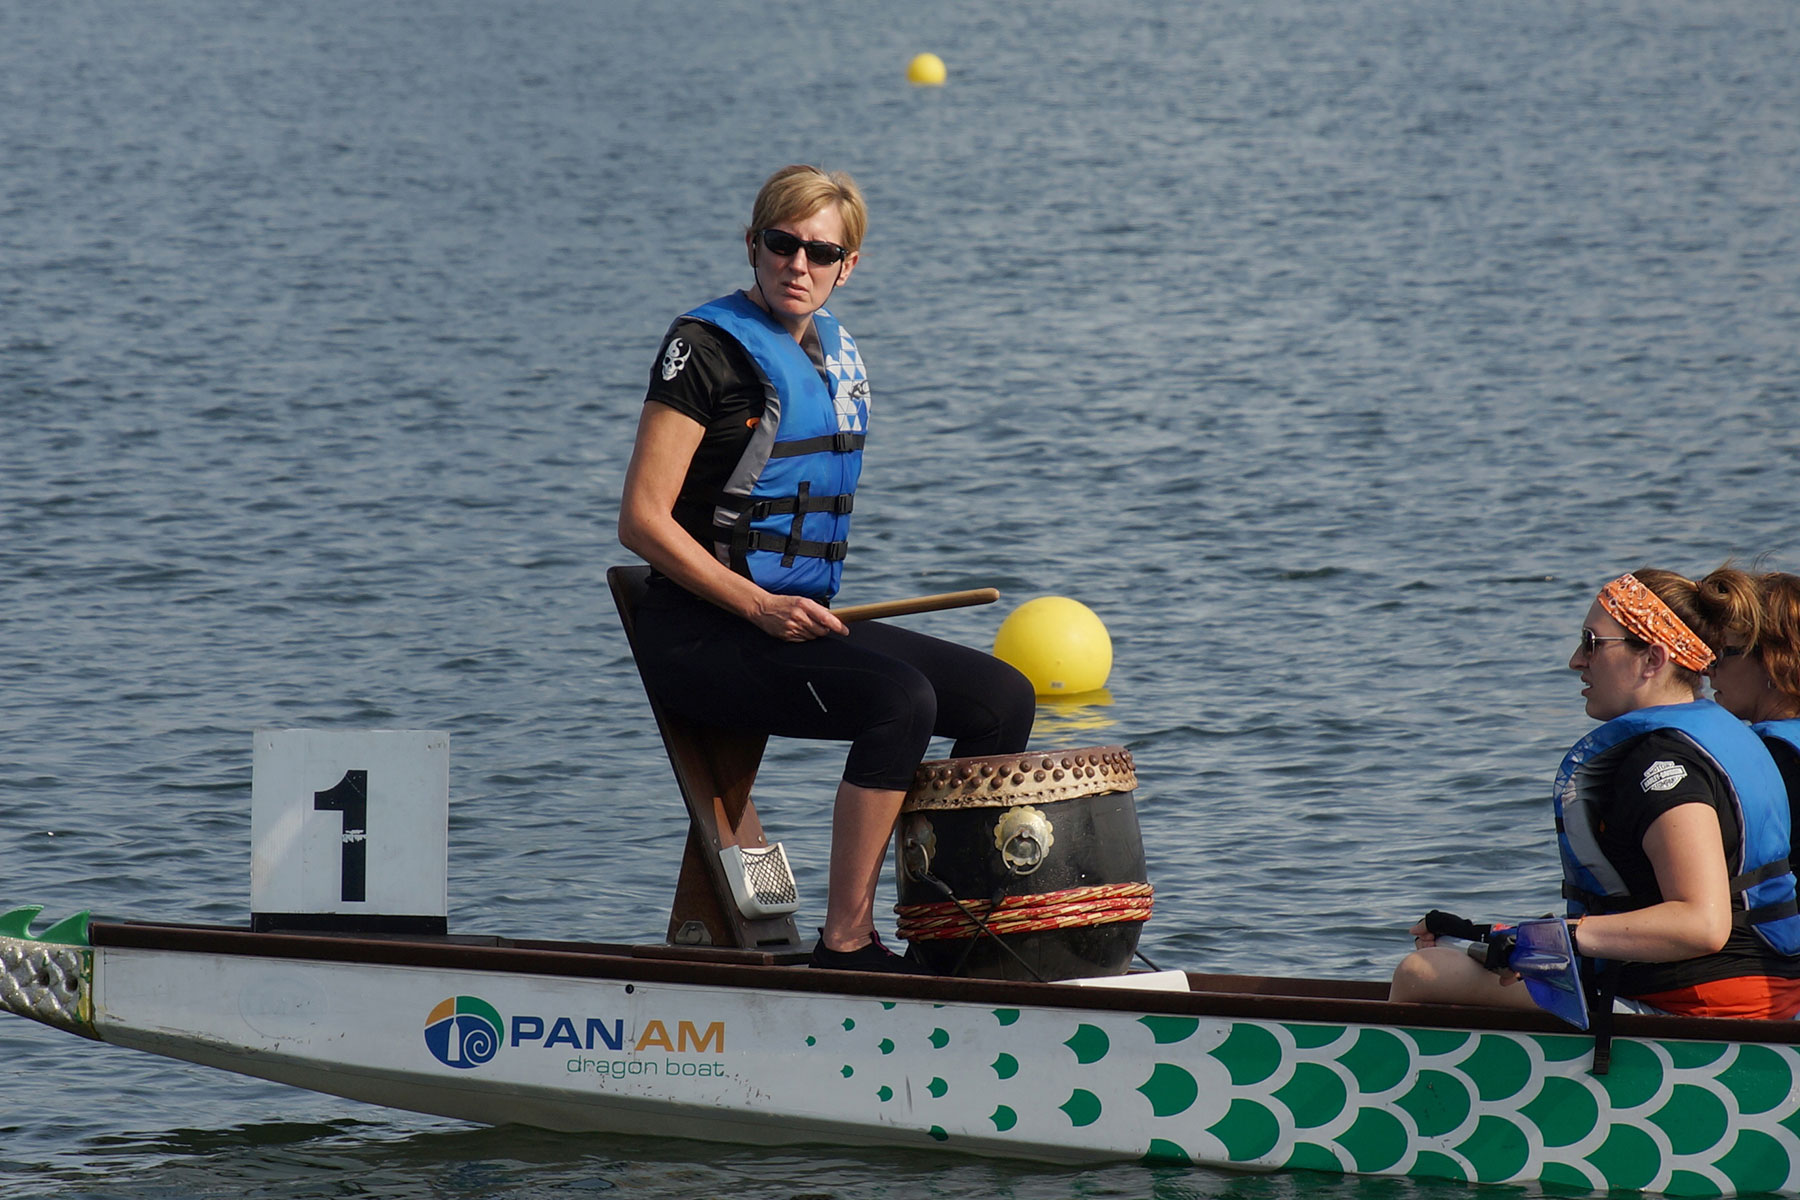 081118_dragonboat_079